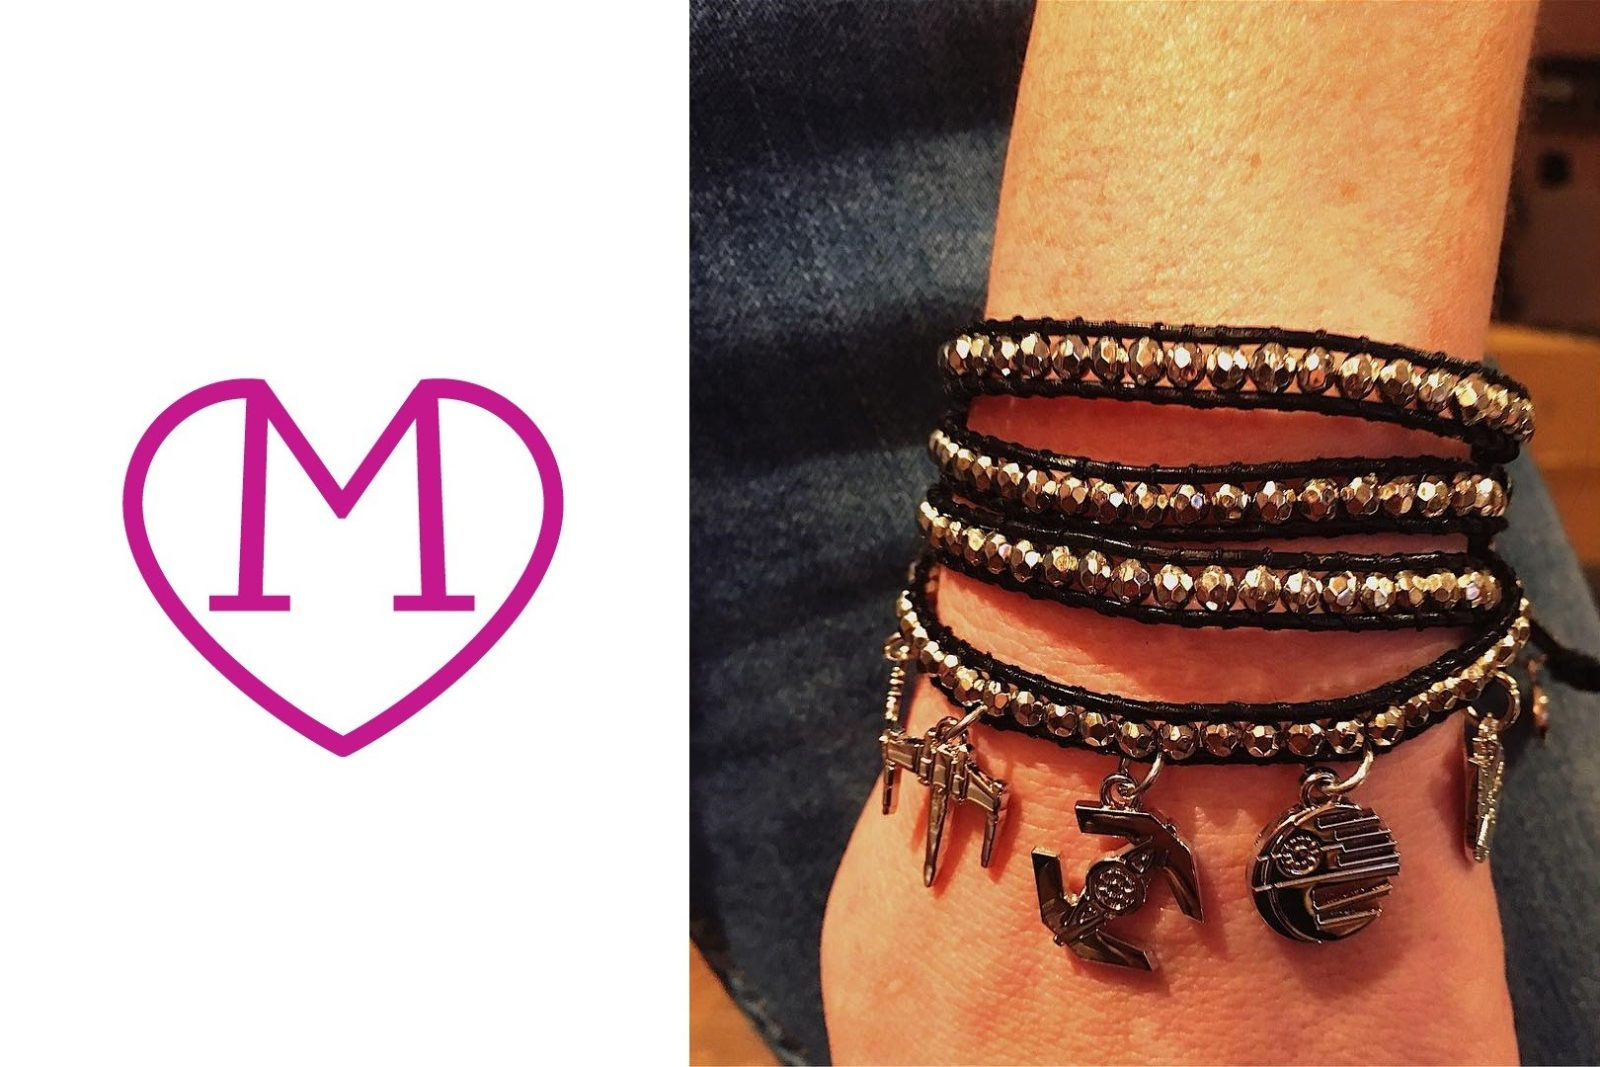 New Love And Madness wrap bracelet!